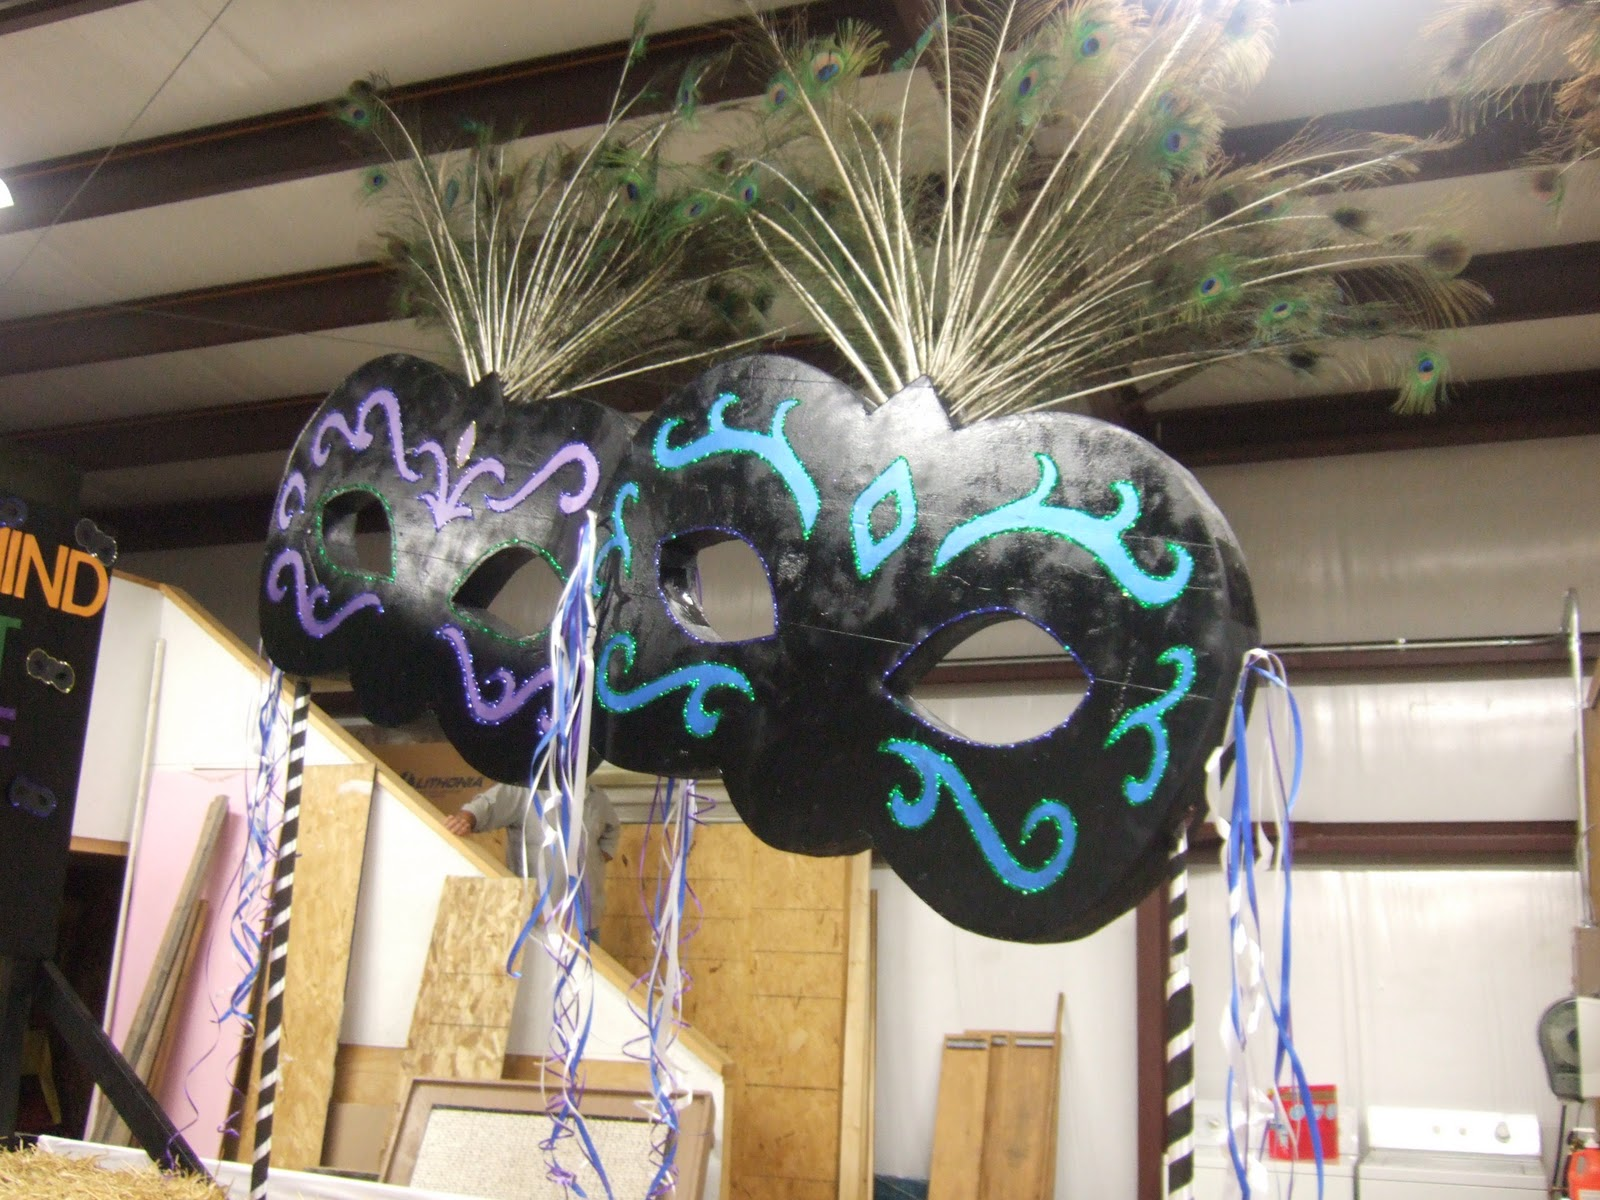 Giant Masquerade Masks for Party Decorations